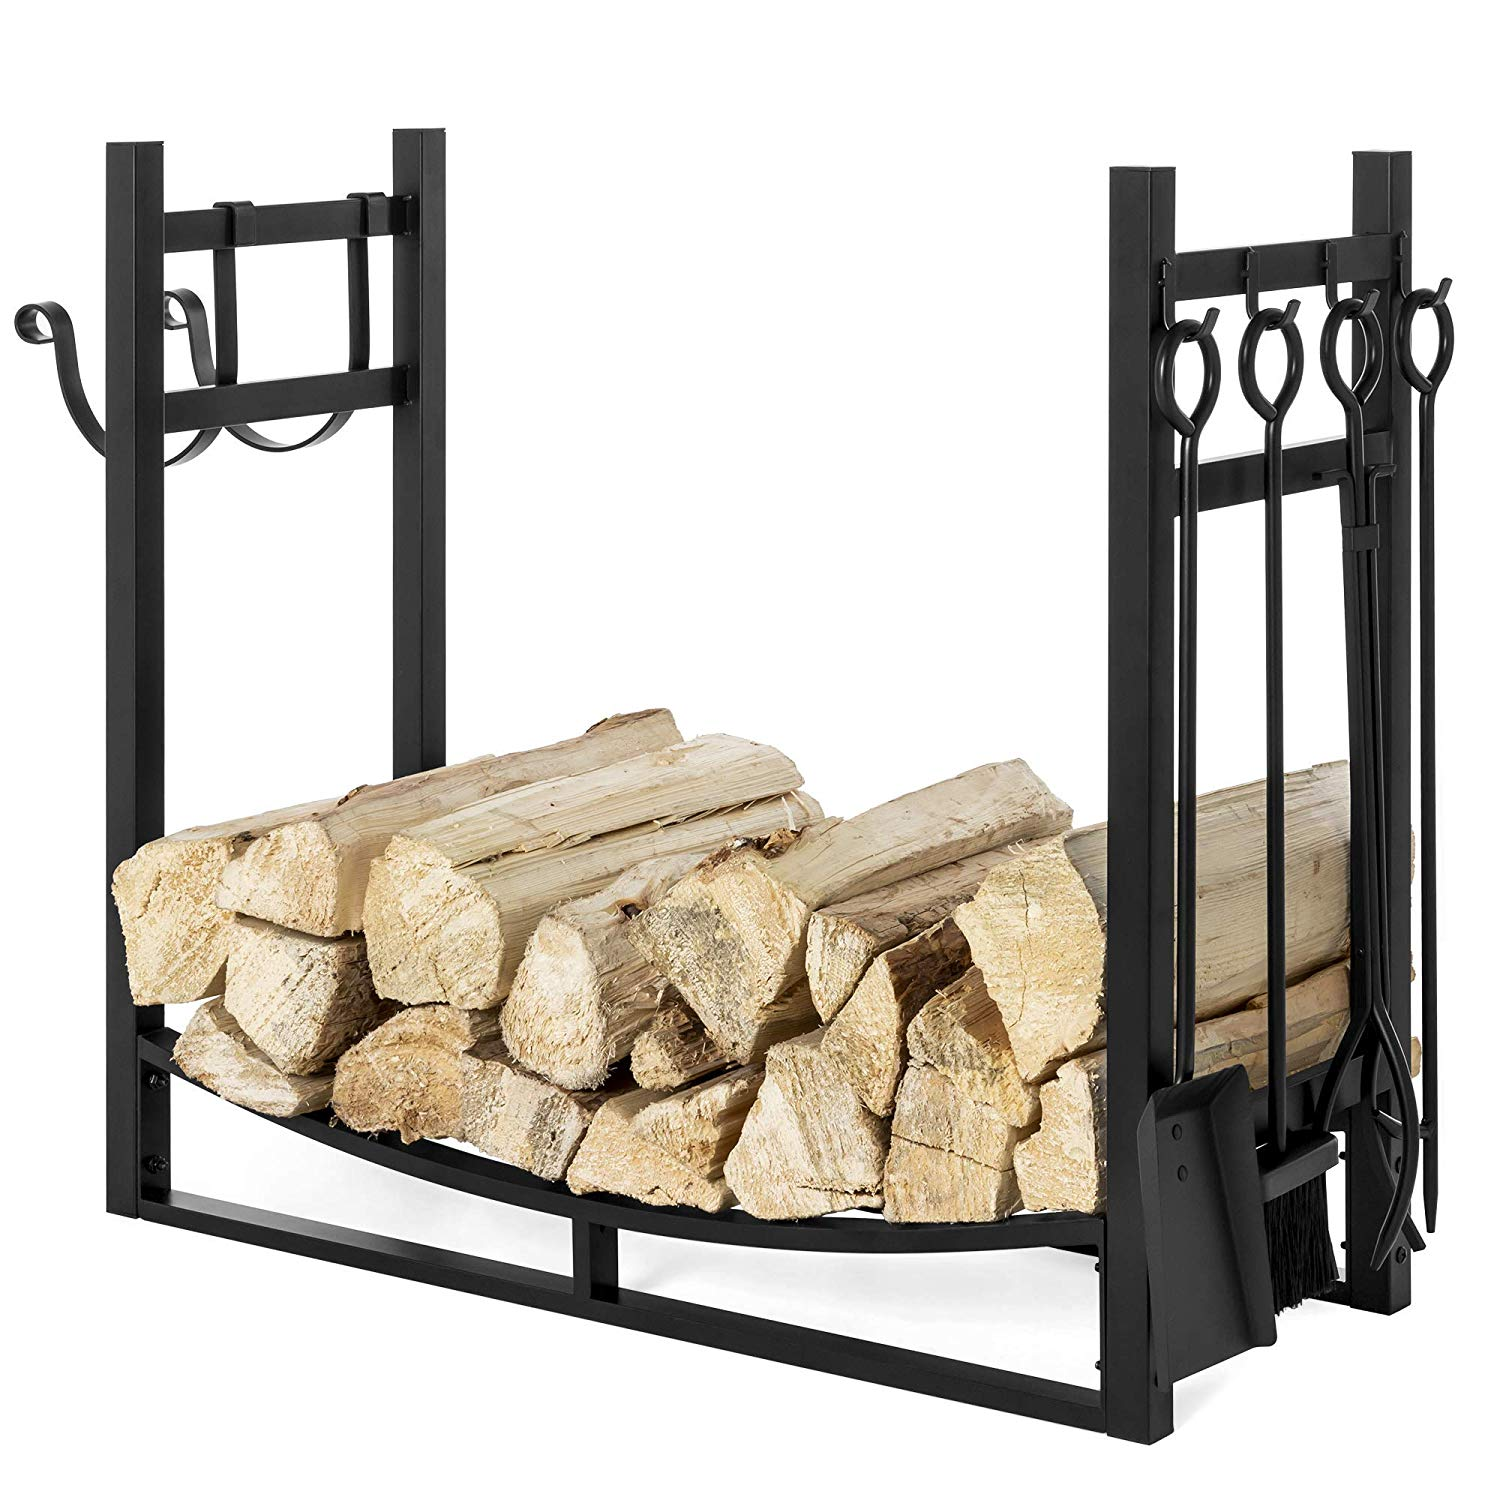 Fireplace tool Set with Log Holder Unique Best Choice Products 43 5in Steel Firewood Log Storage Rack Accessory and tools for Indoor Outdoor Fire Pit Fireplace W Removable Kindling Holder